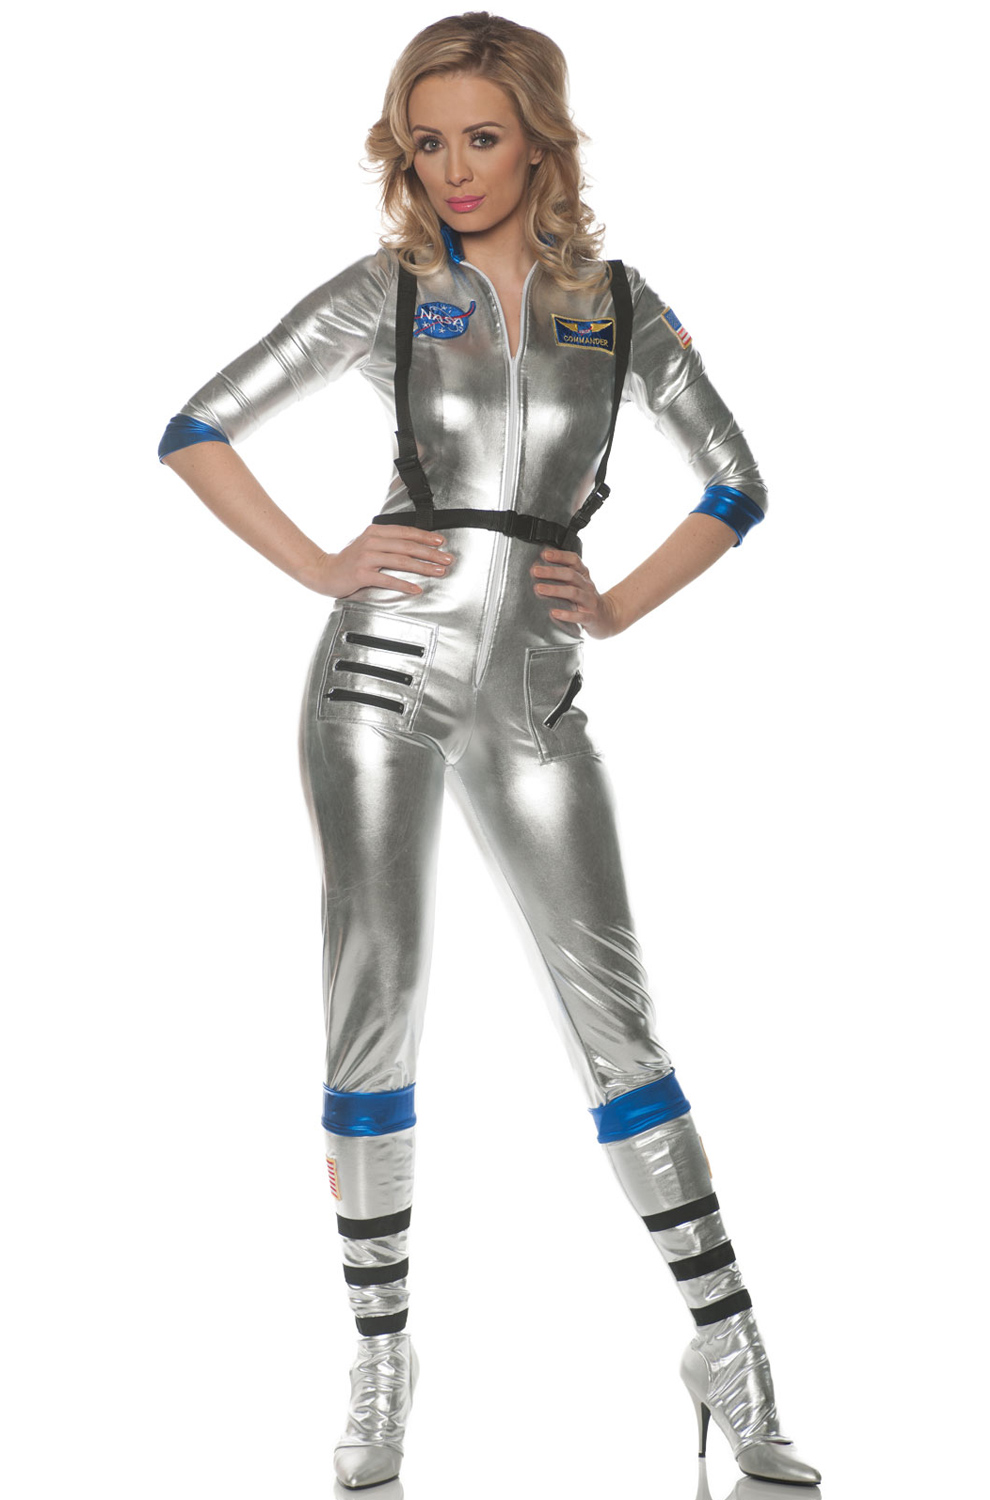 astronaut costume adult costumes - HD 1027×1280